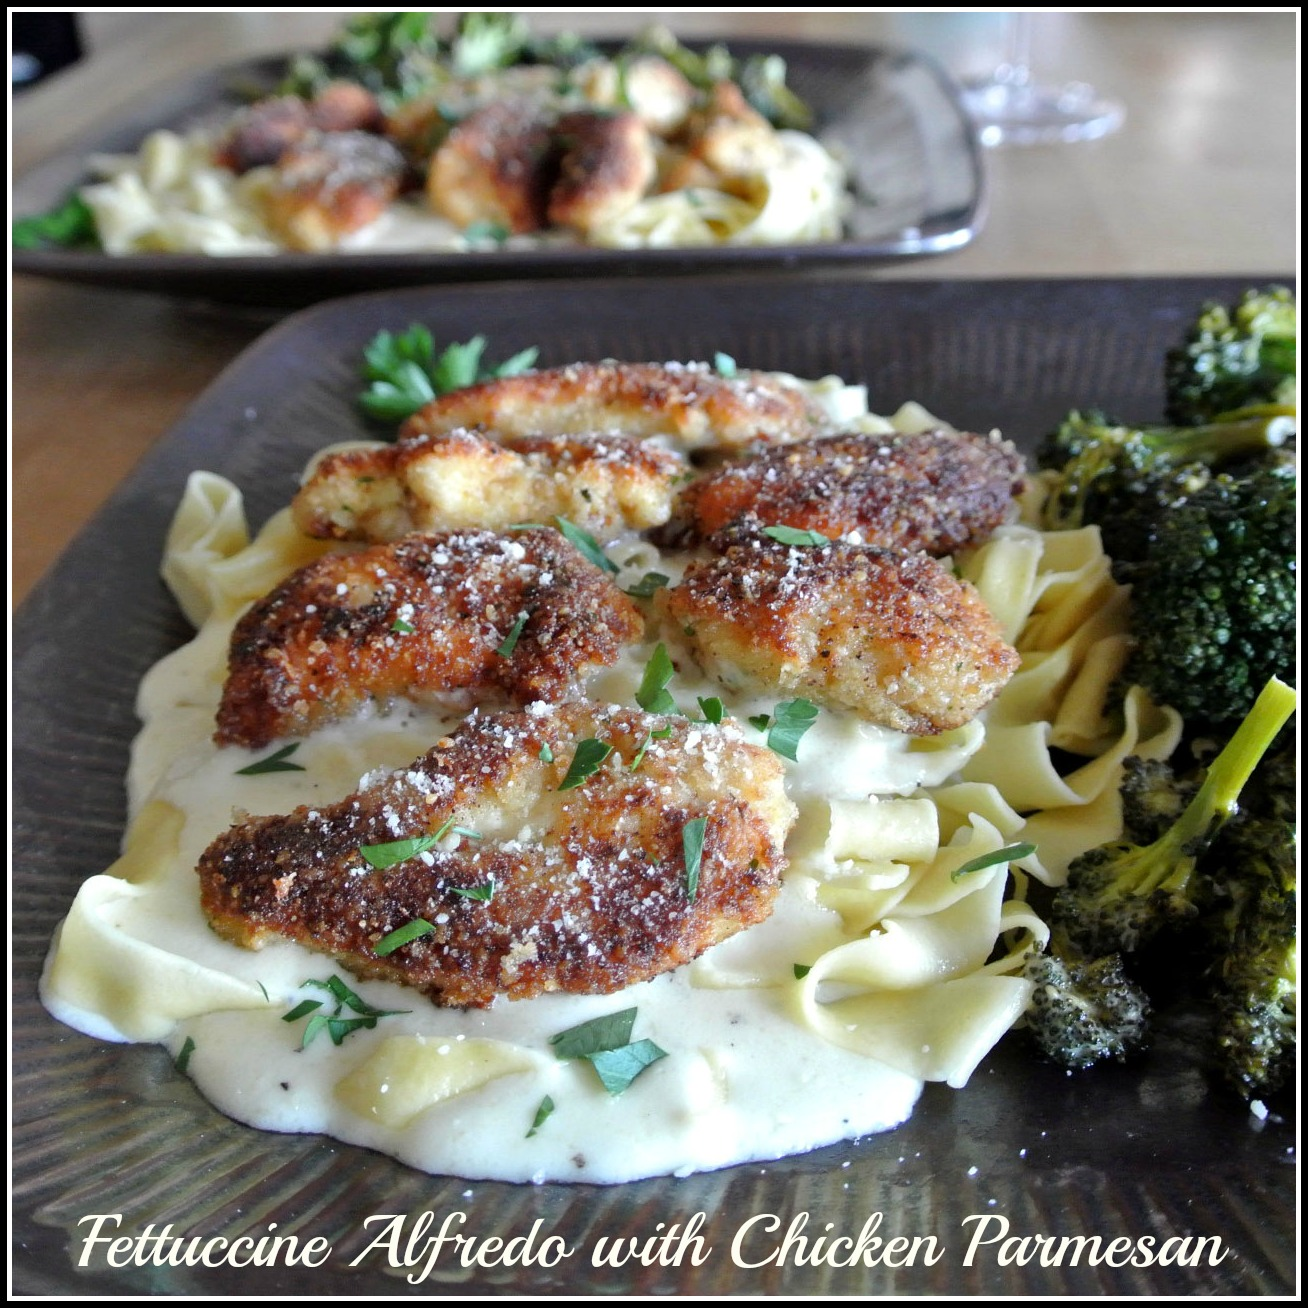 ... Cooking For Two: Homemade Fettuccine Alfredo with Chicken Parmesan